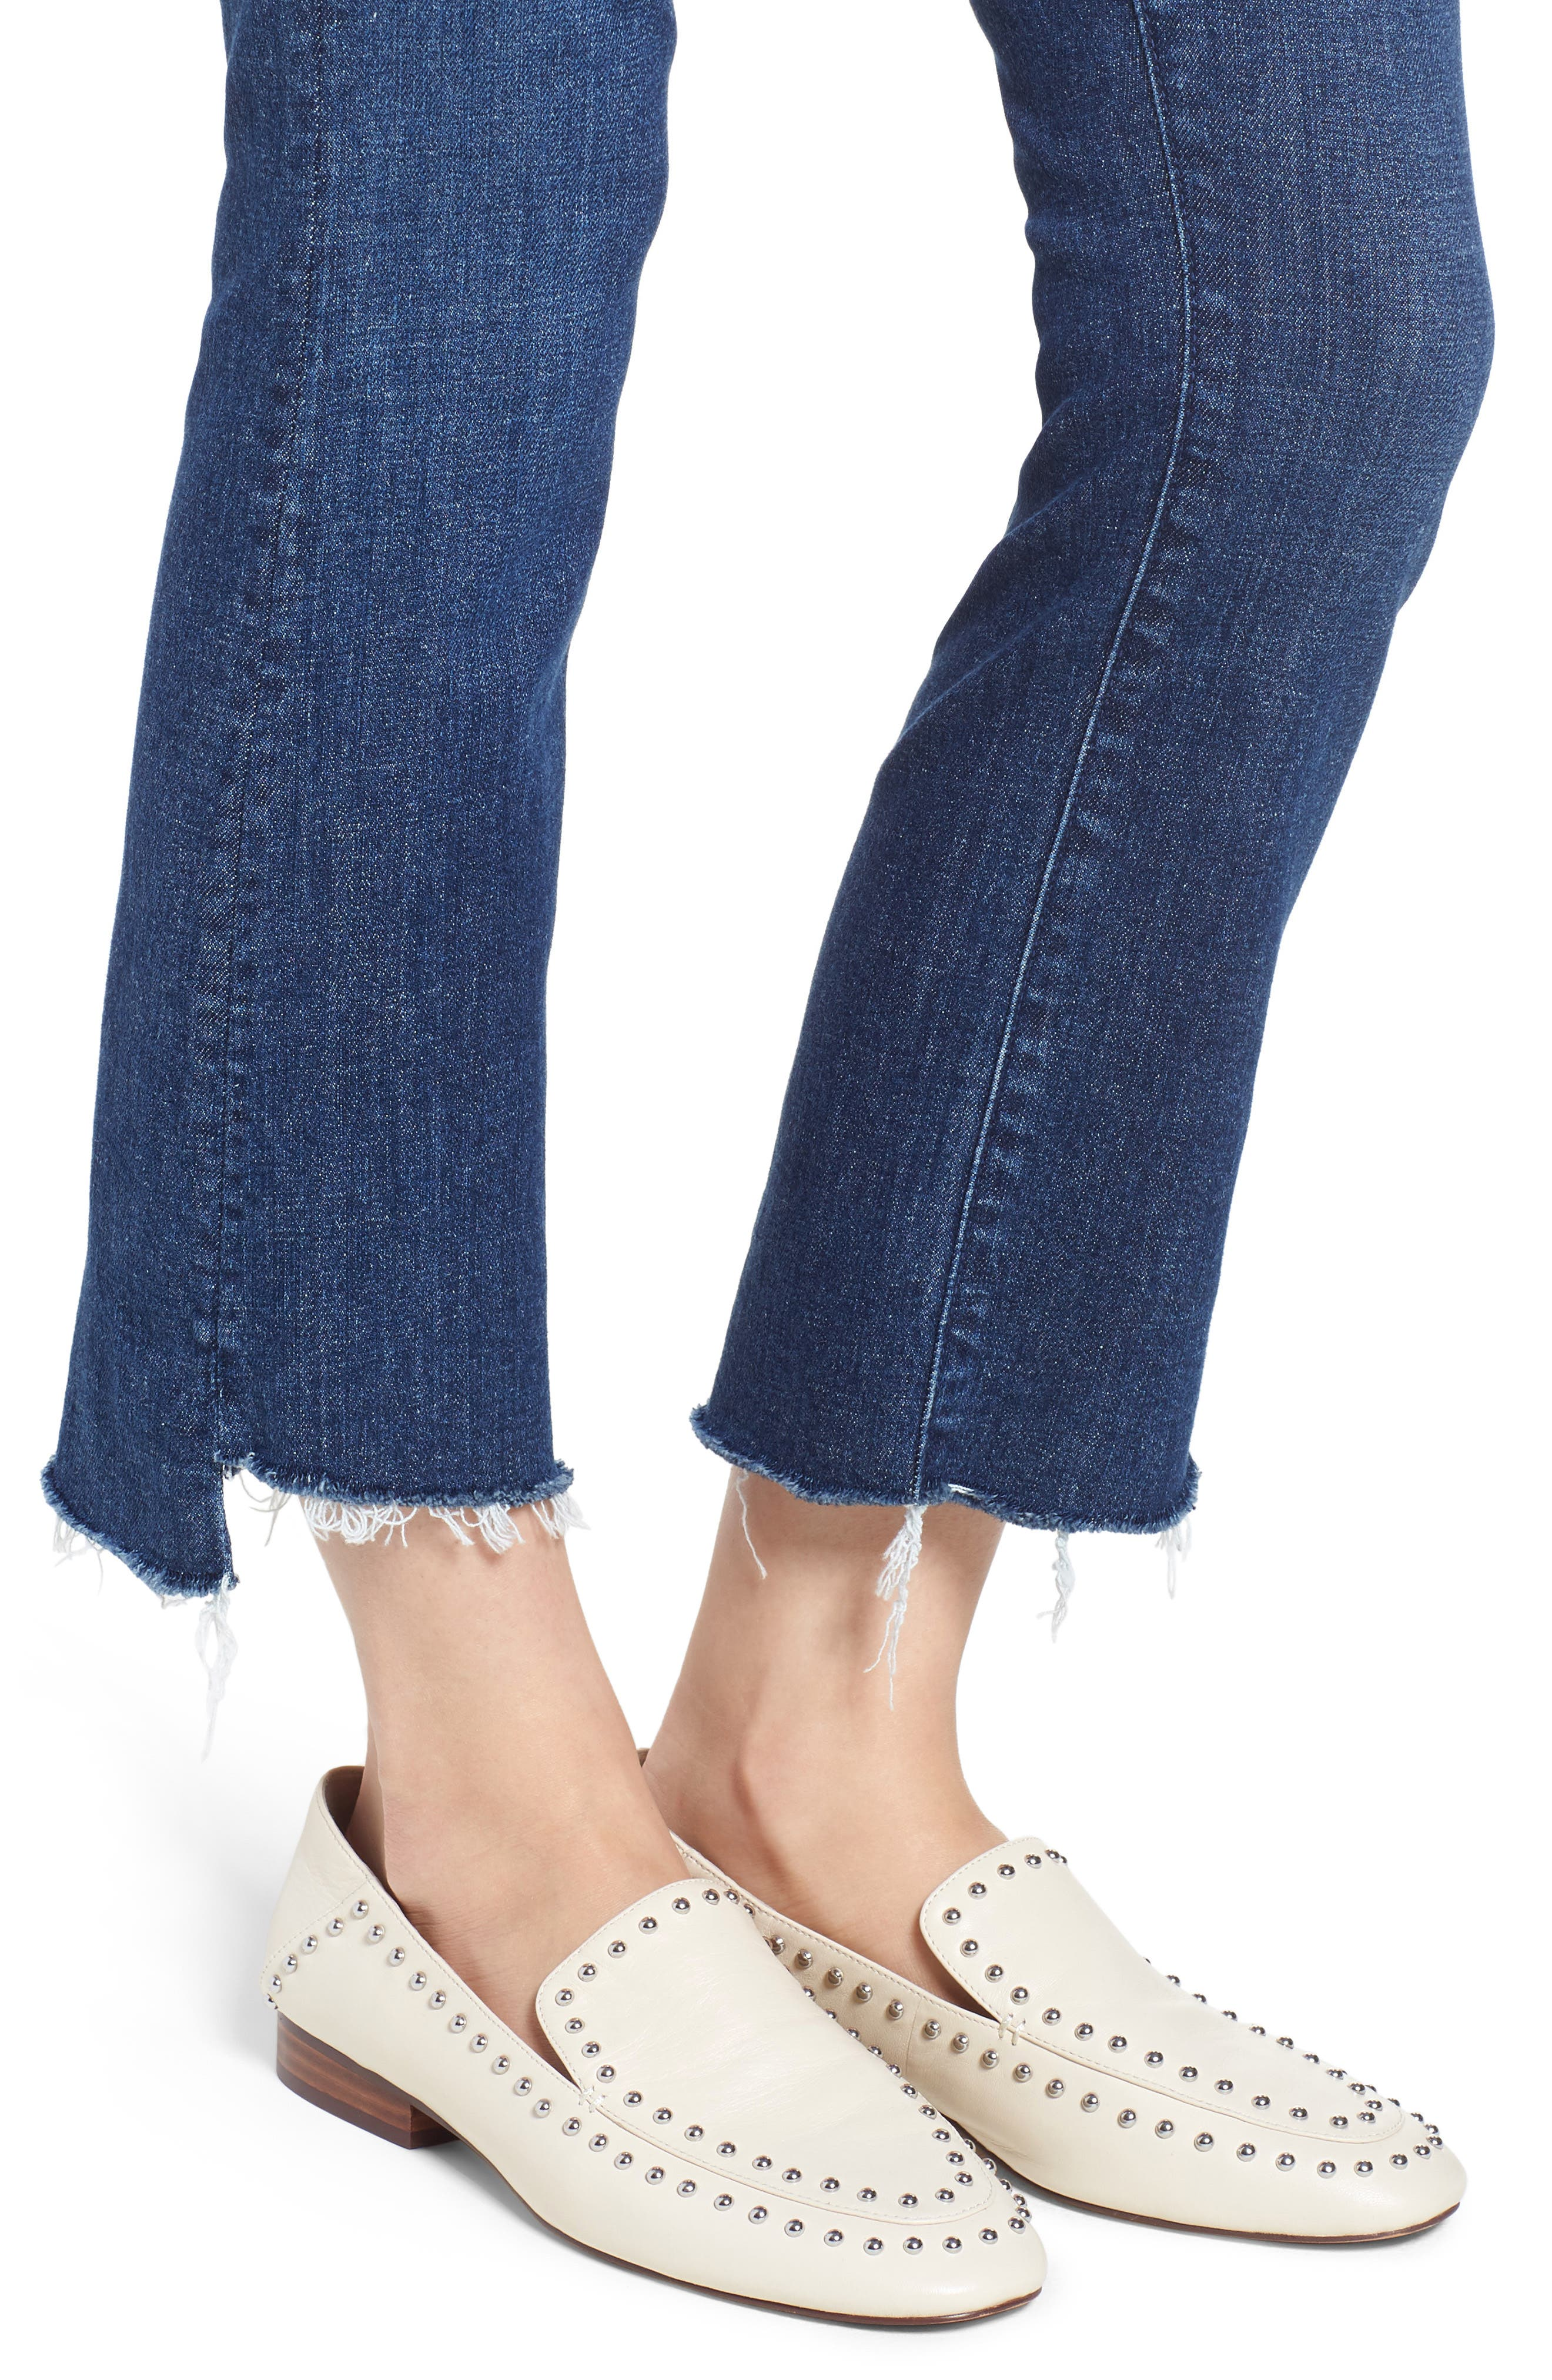 'The Insider' Crop Step Fray Jeans,                             Alternate thumbnail 4, color,                             Crushing It